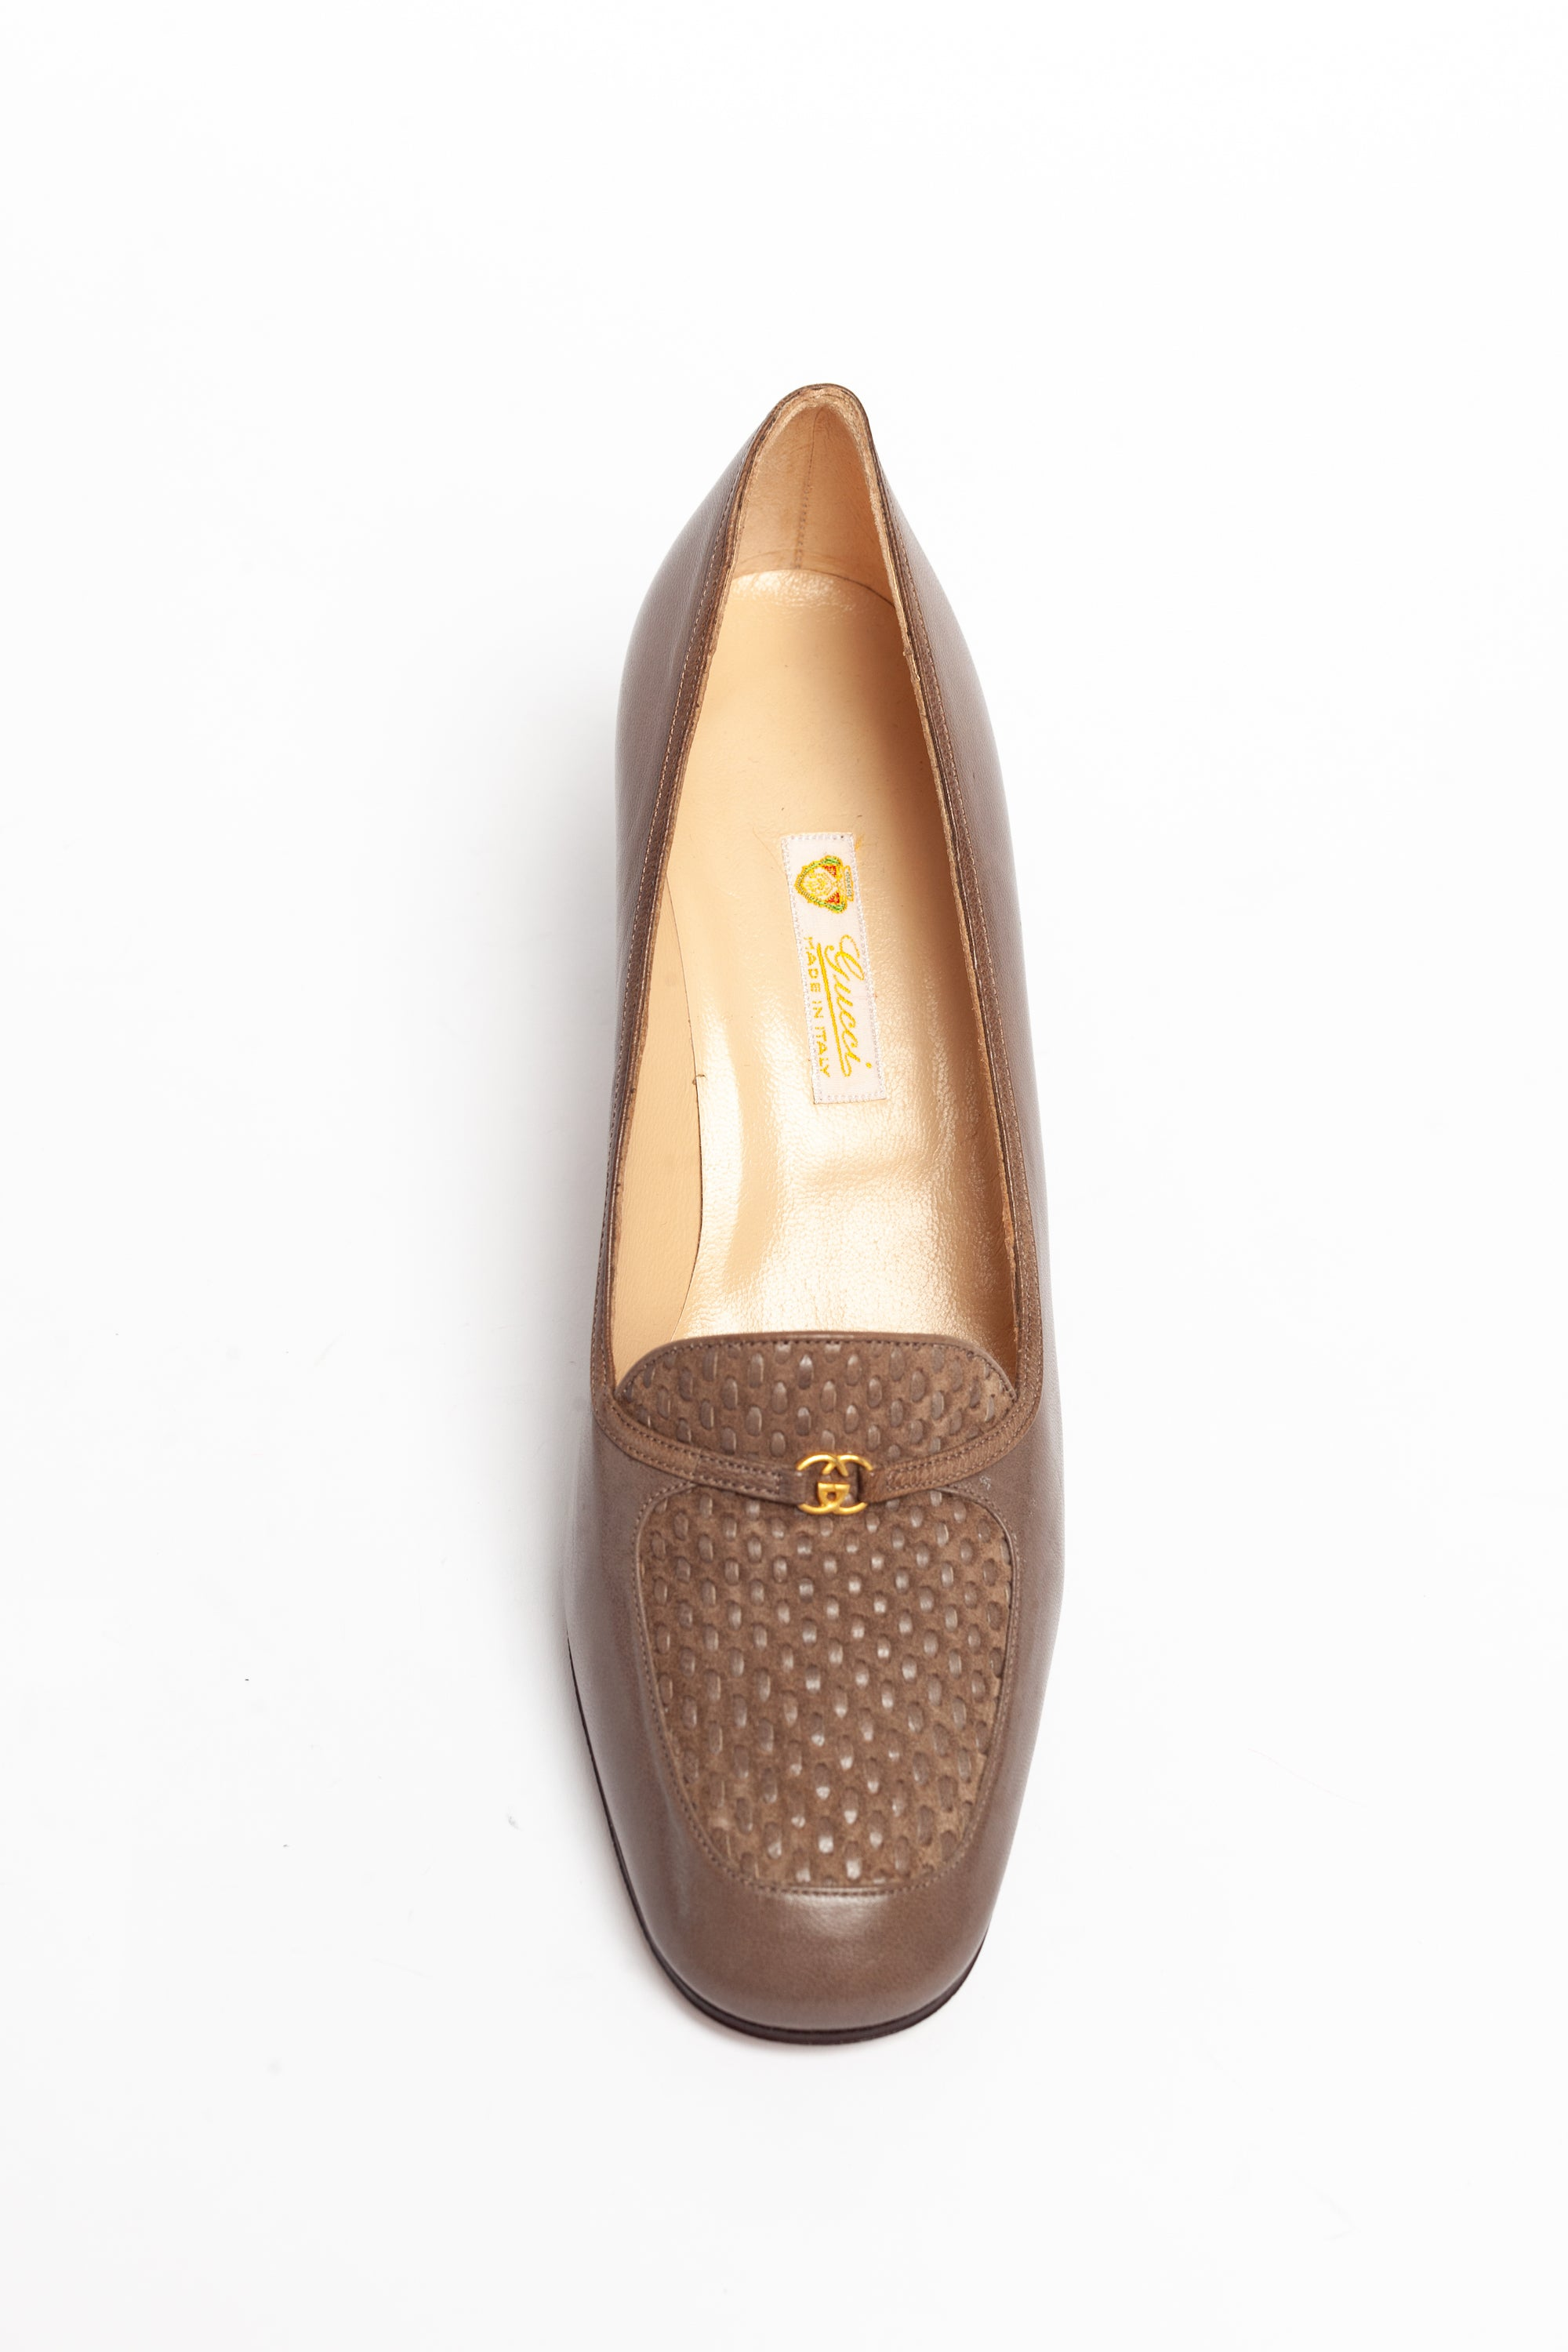 Gucci <br> 1970's logo high heeled loafers